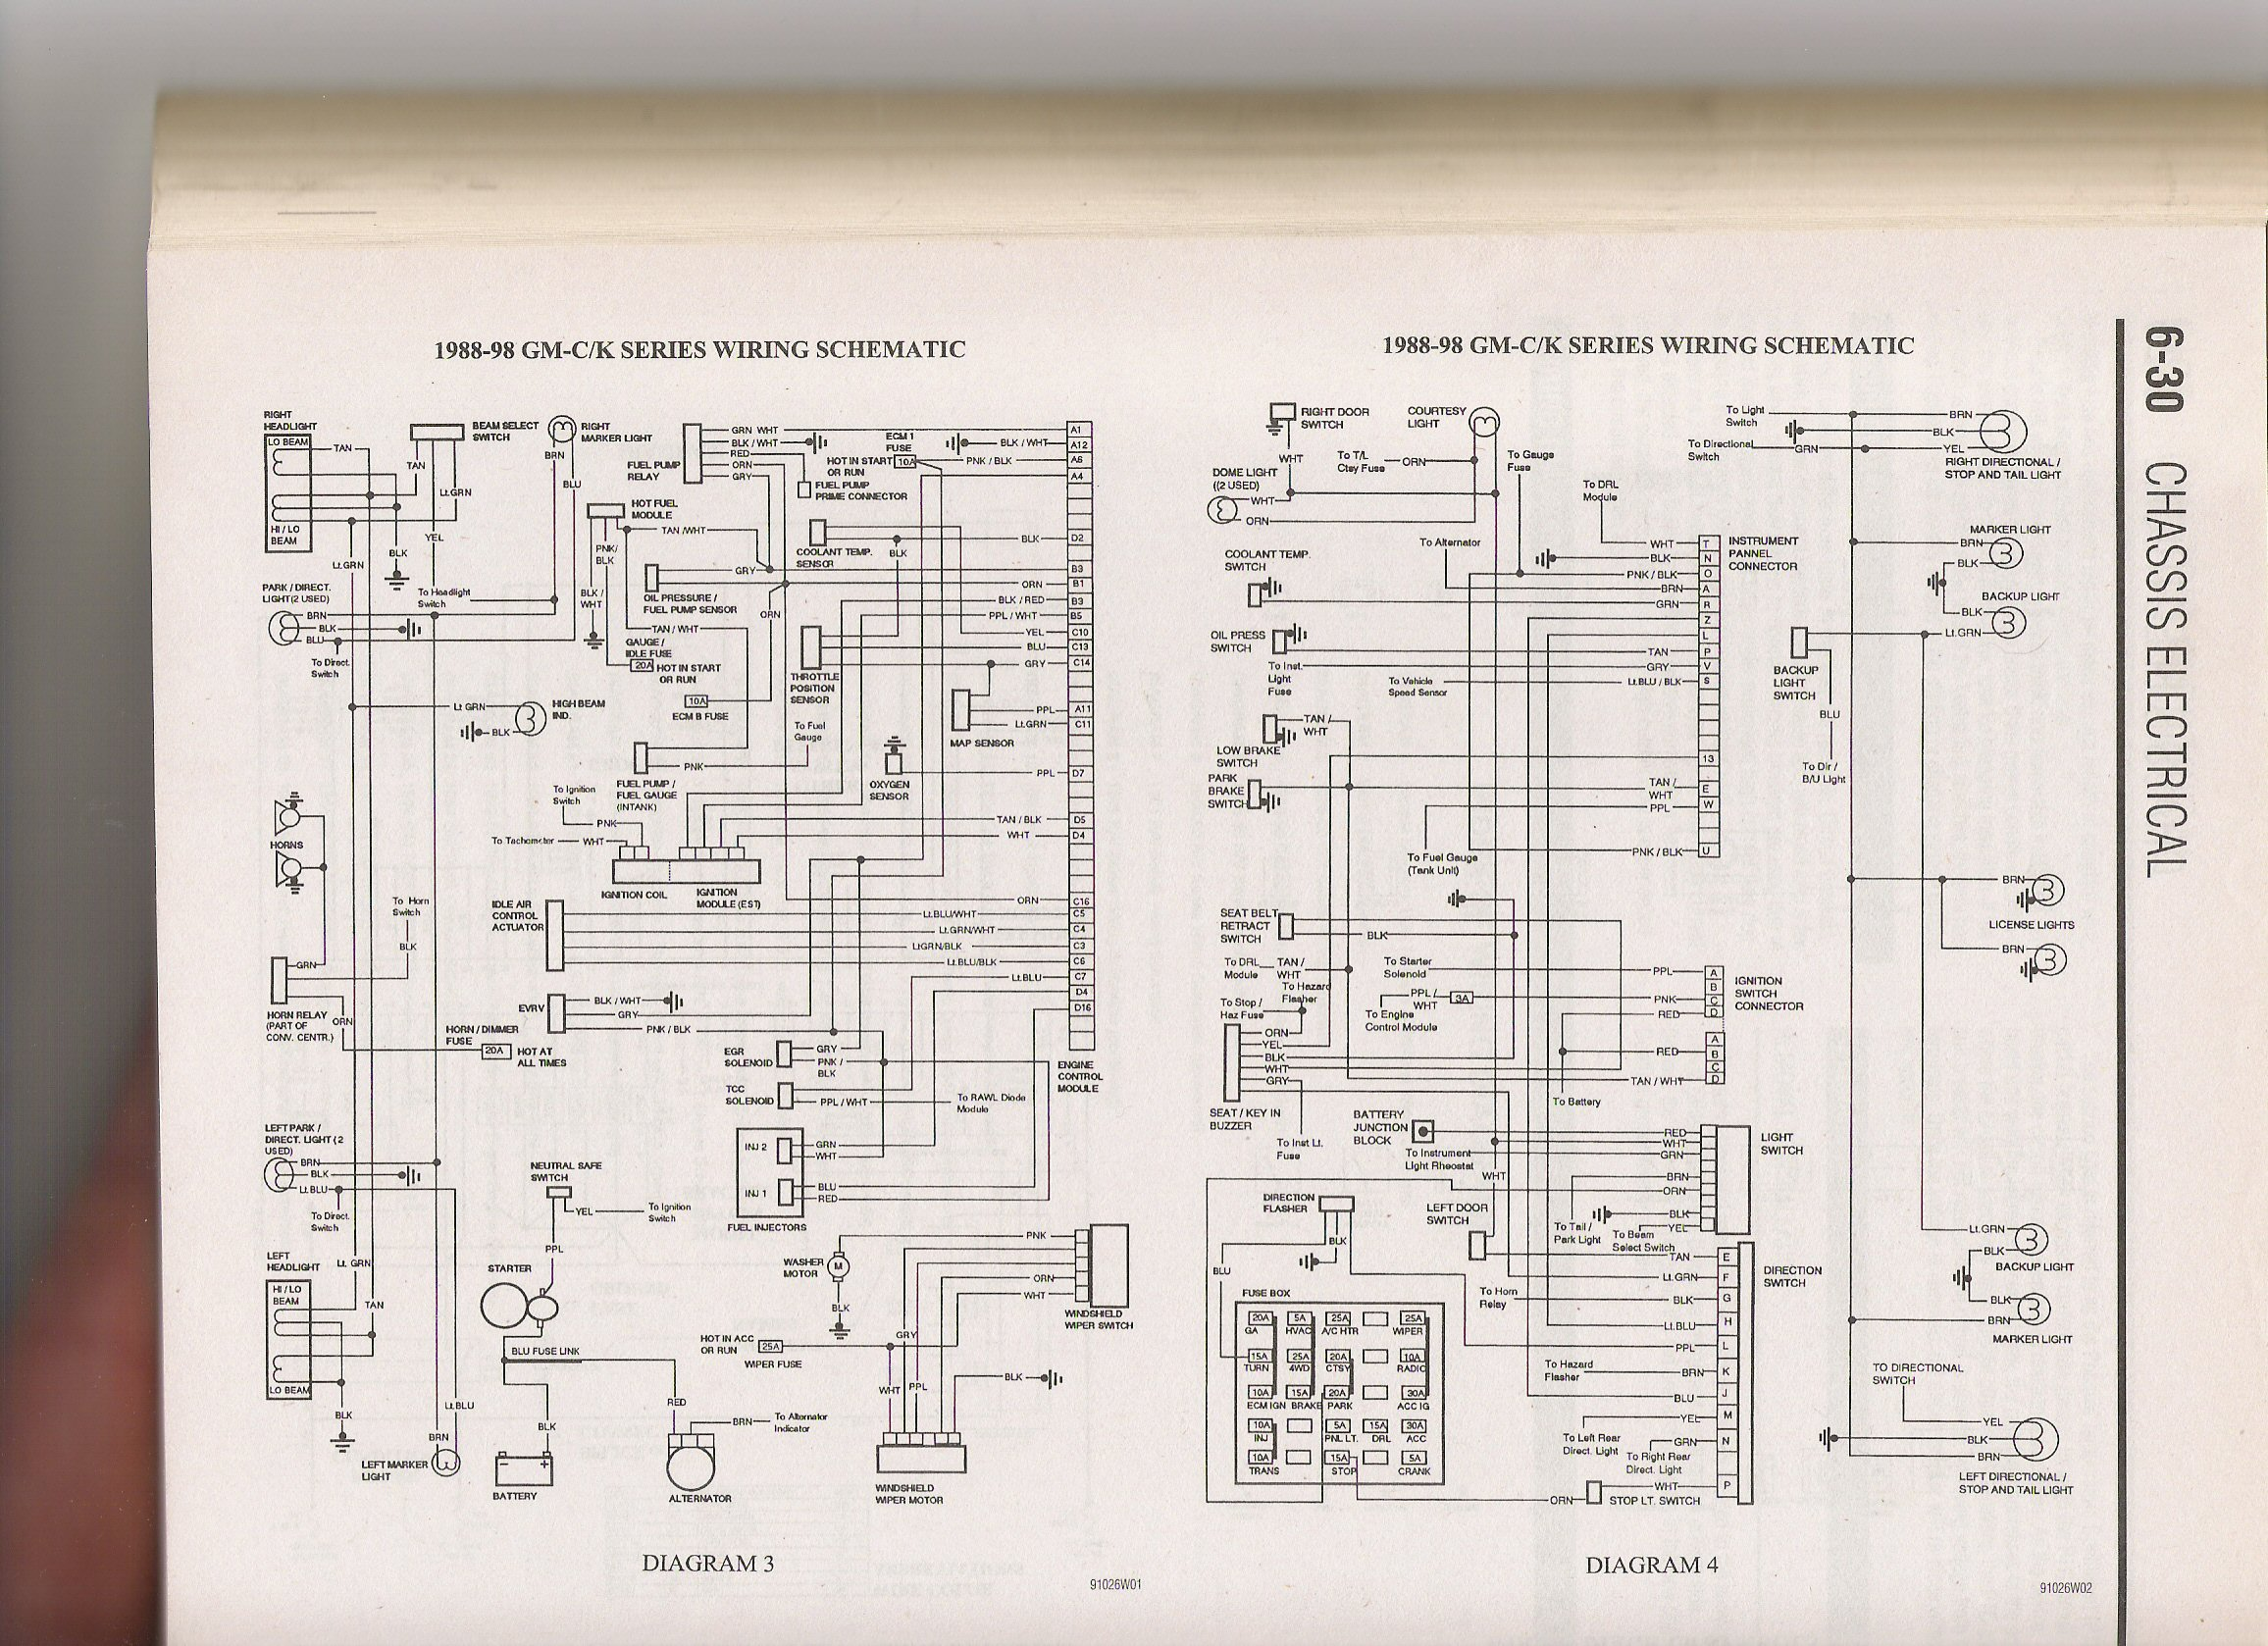 1992 chevy 1500 wiring diagrams free picture diagram xt 9128  chevy silverado radio wiring diagram free download wiring  chevy silverado radio wiring diagram